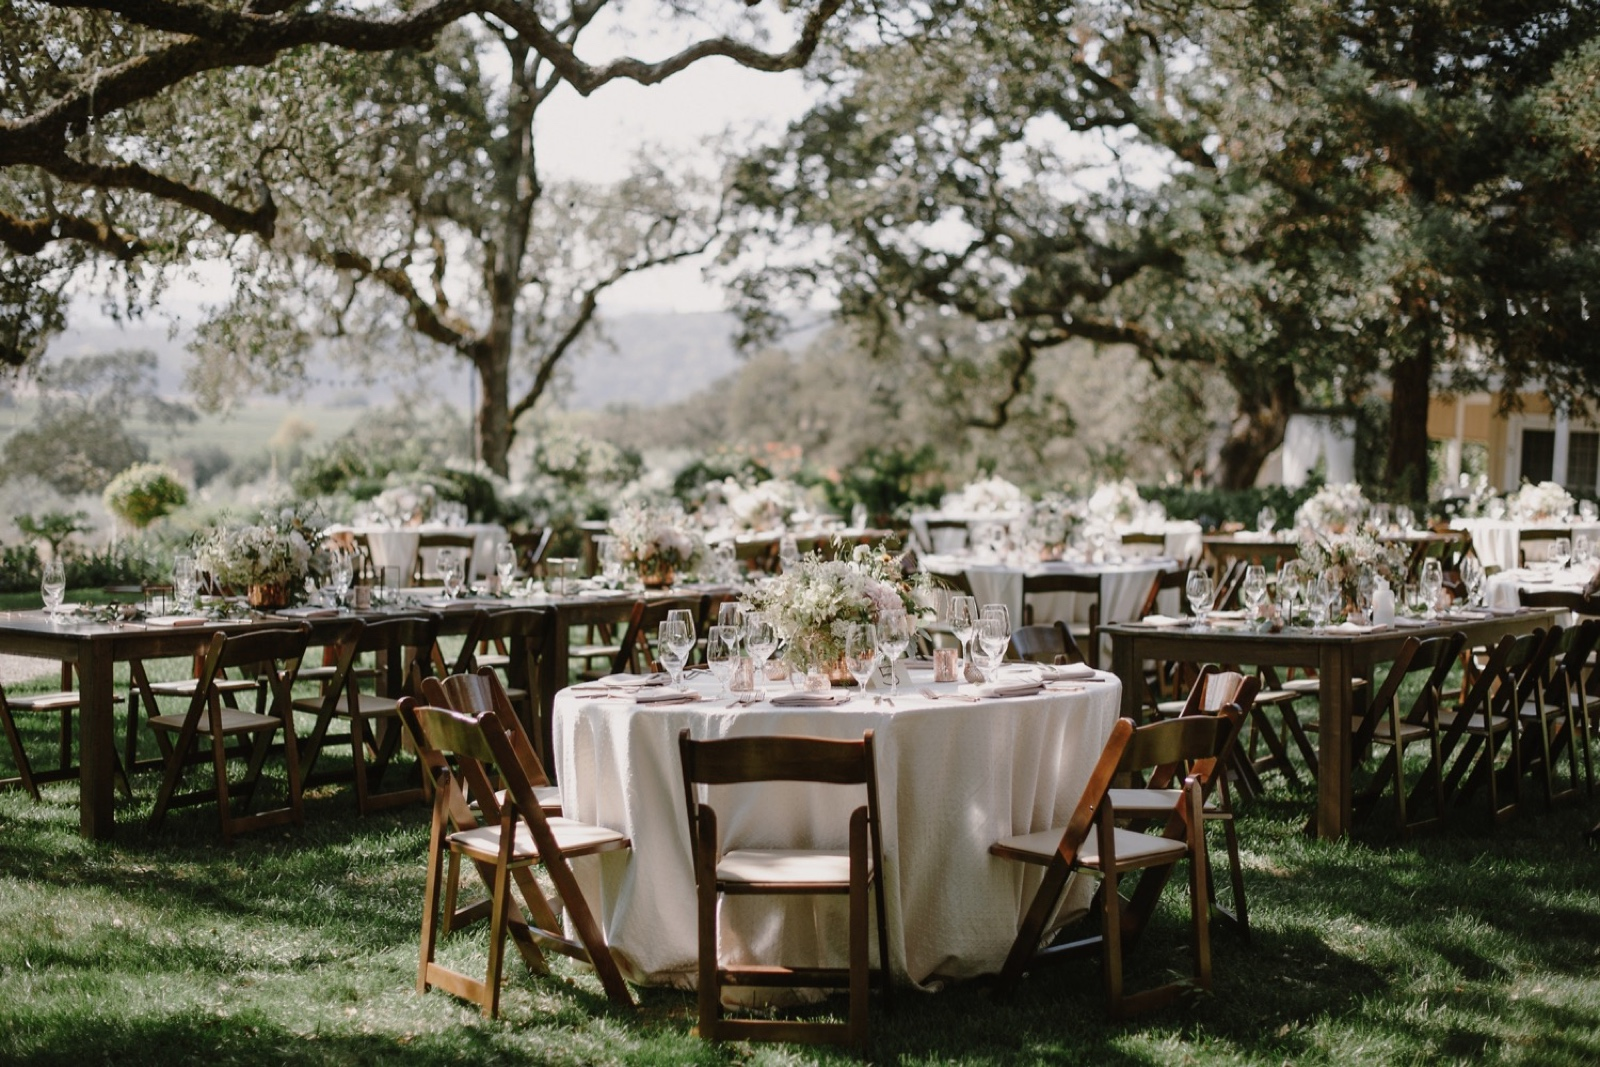 Beltane_Ranch_Wedding_LGBTQ-82.jpg